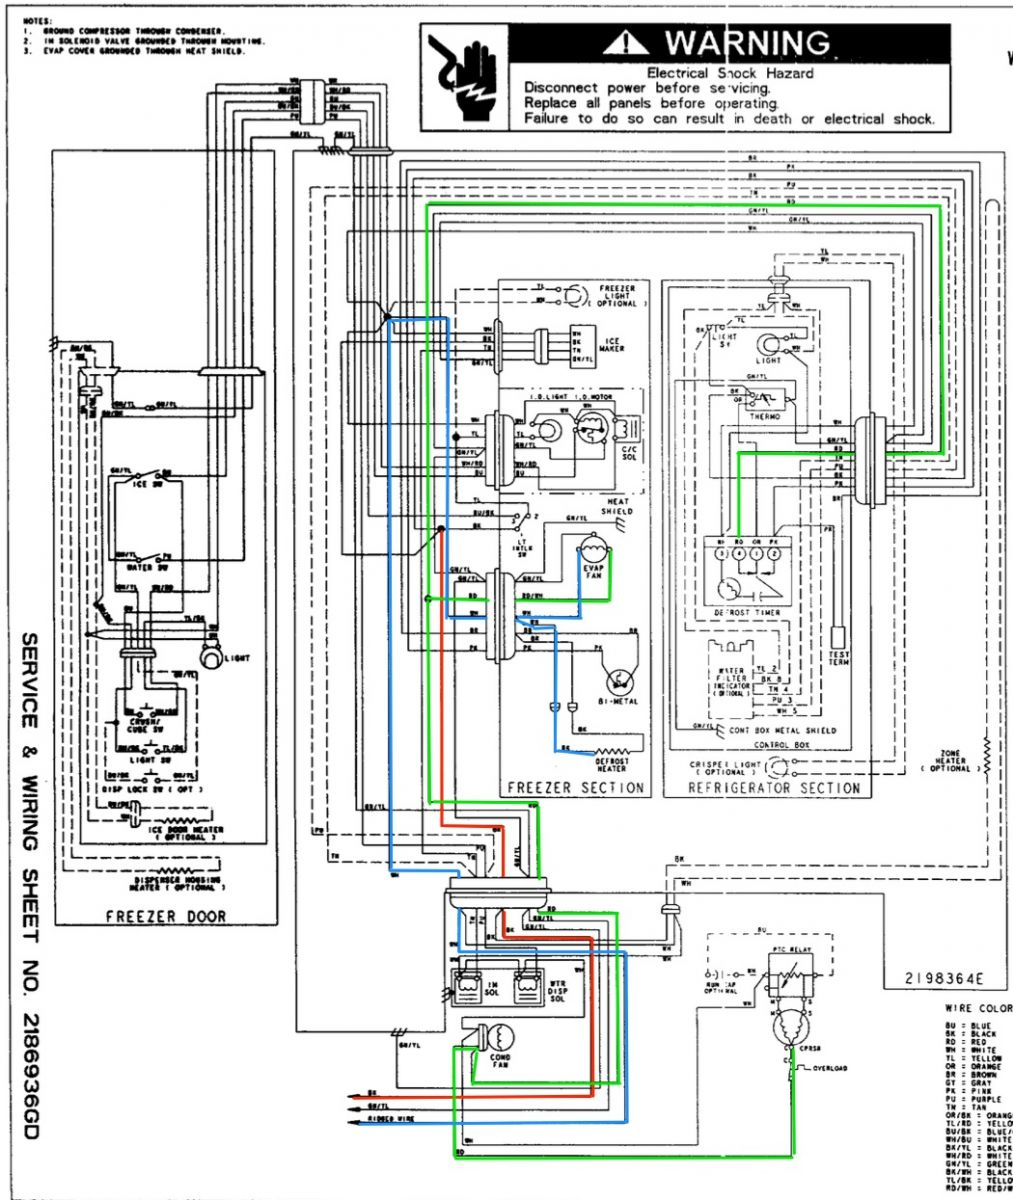 gallery_4_4_346879 whirlpool ed25rfxfw01 refrigerator wiring diagram the refrigerator wiring diagram at reclaimingppi.co